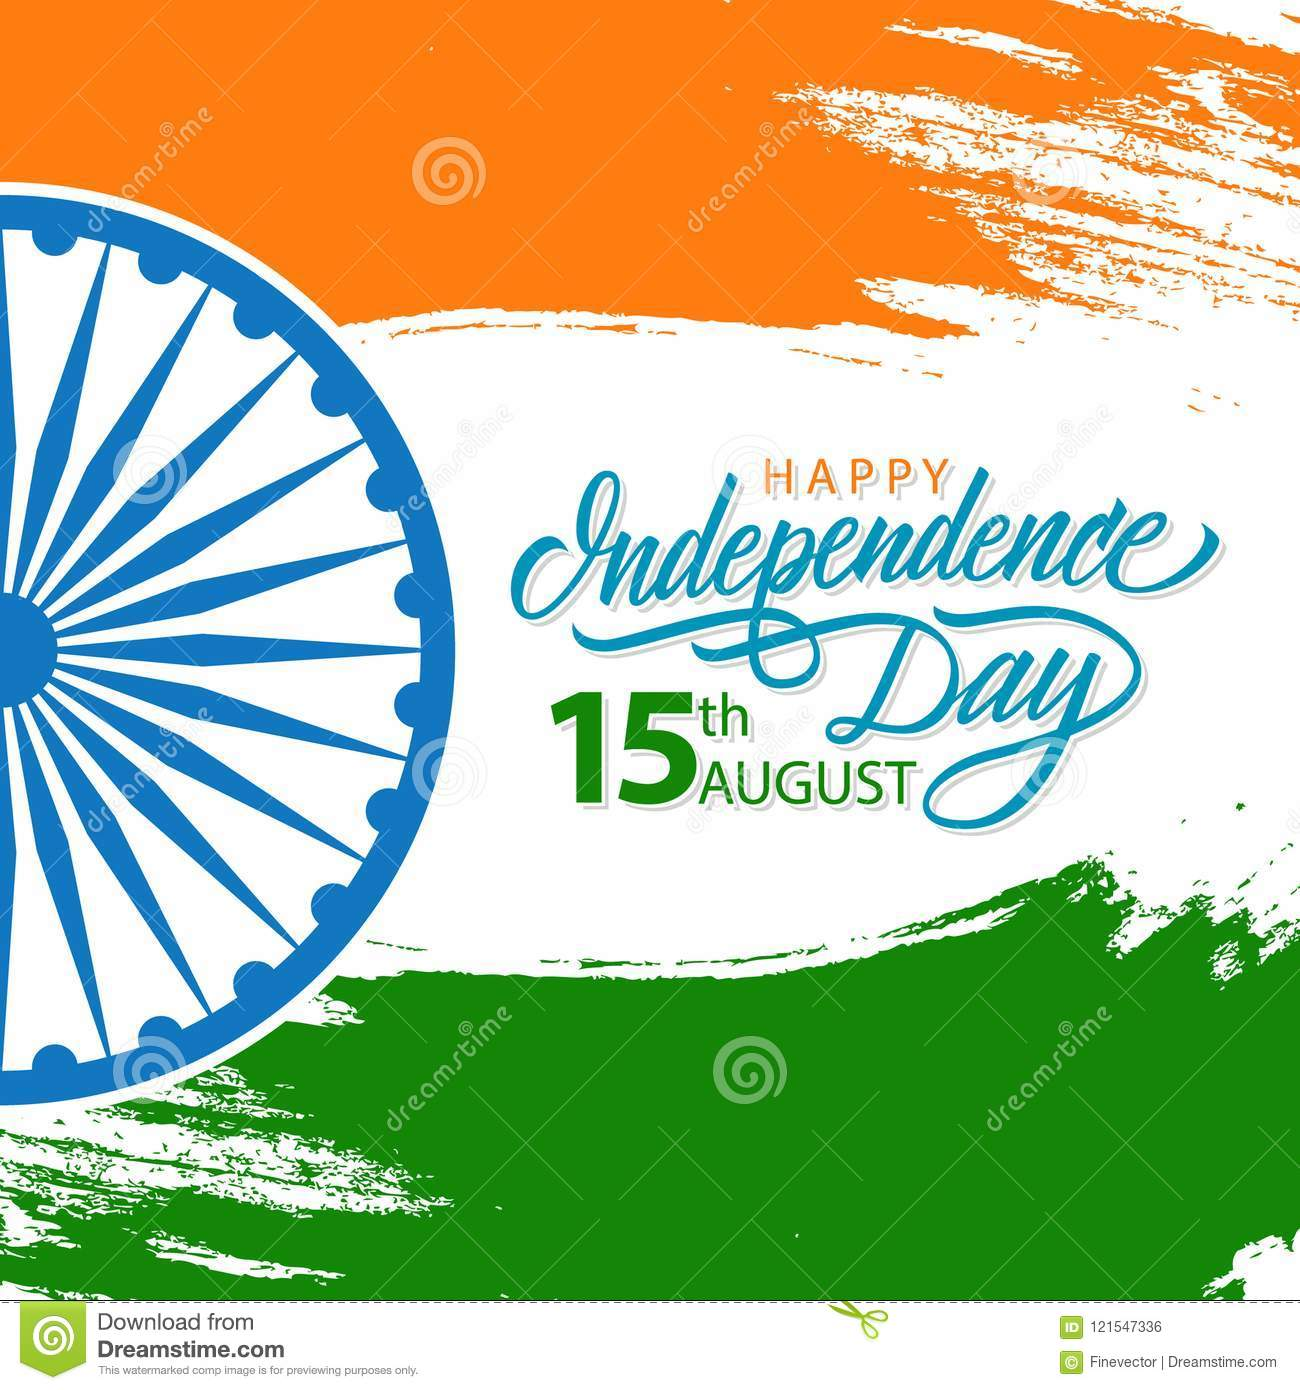 India happy independence day celebrate card with hand lettering india happy independence day celebrate card with hand lettering holiday greetings m4hsunfo